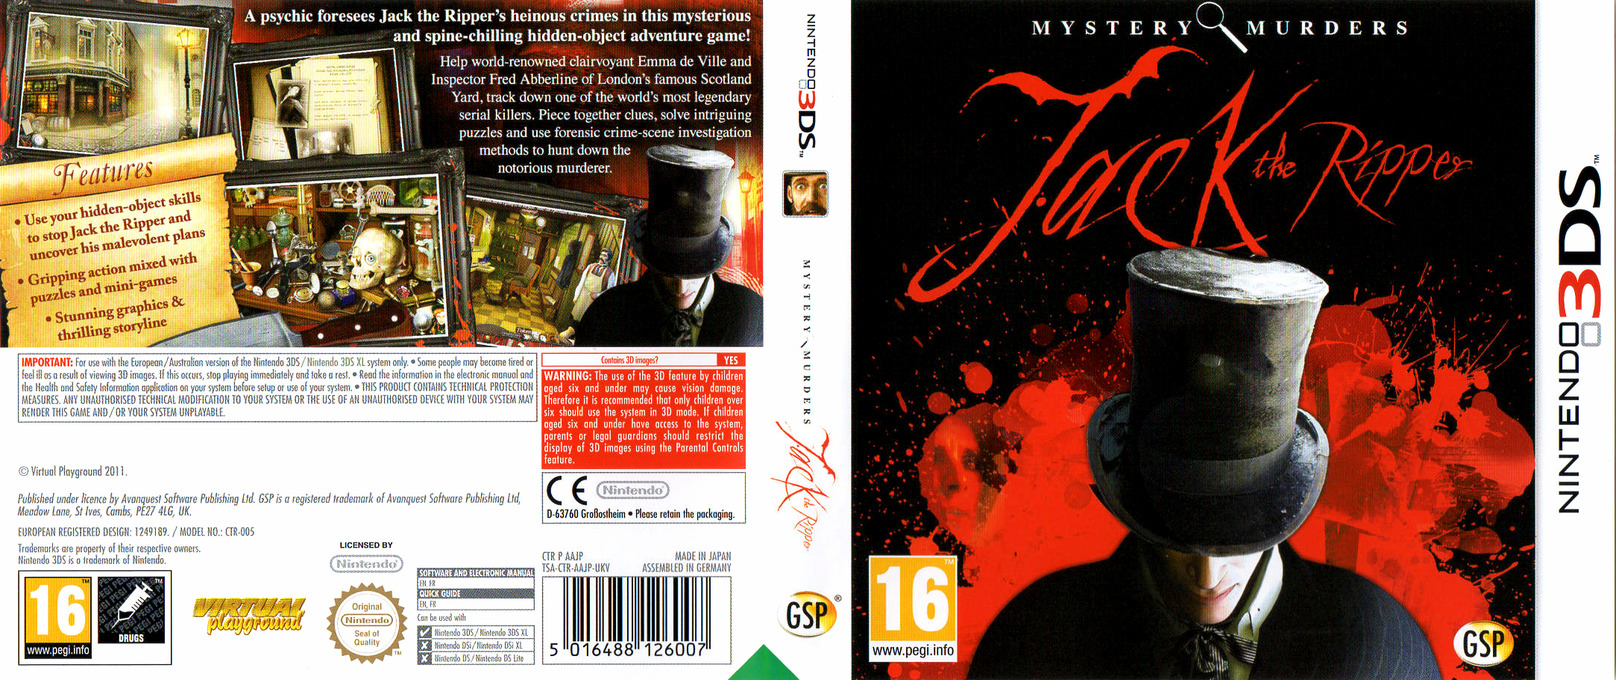 Mystery Murders - Jack the Ripper 3DS coverfullHQ (AAJP)